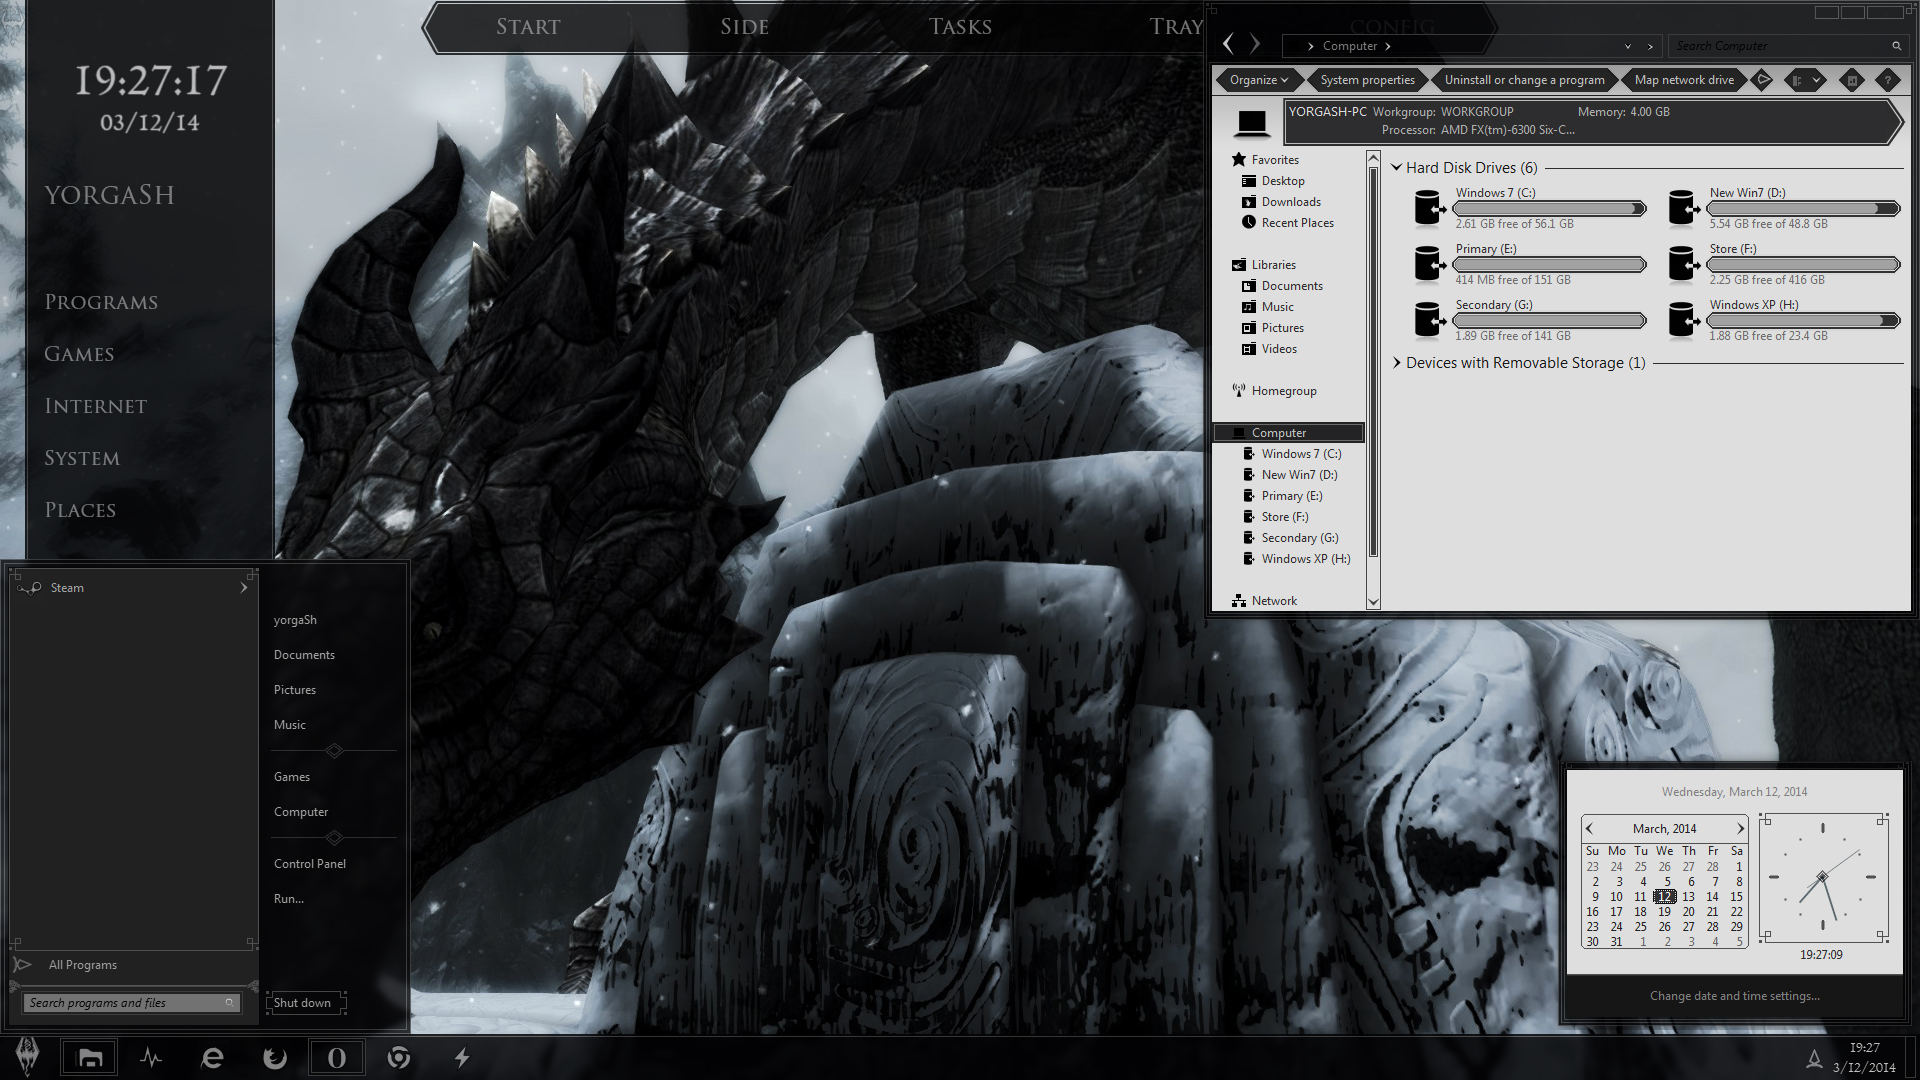 Skyrim Desktop WIP 12, March by yorgash